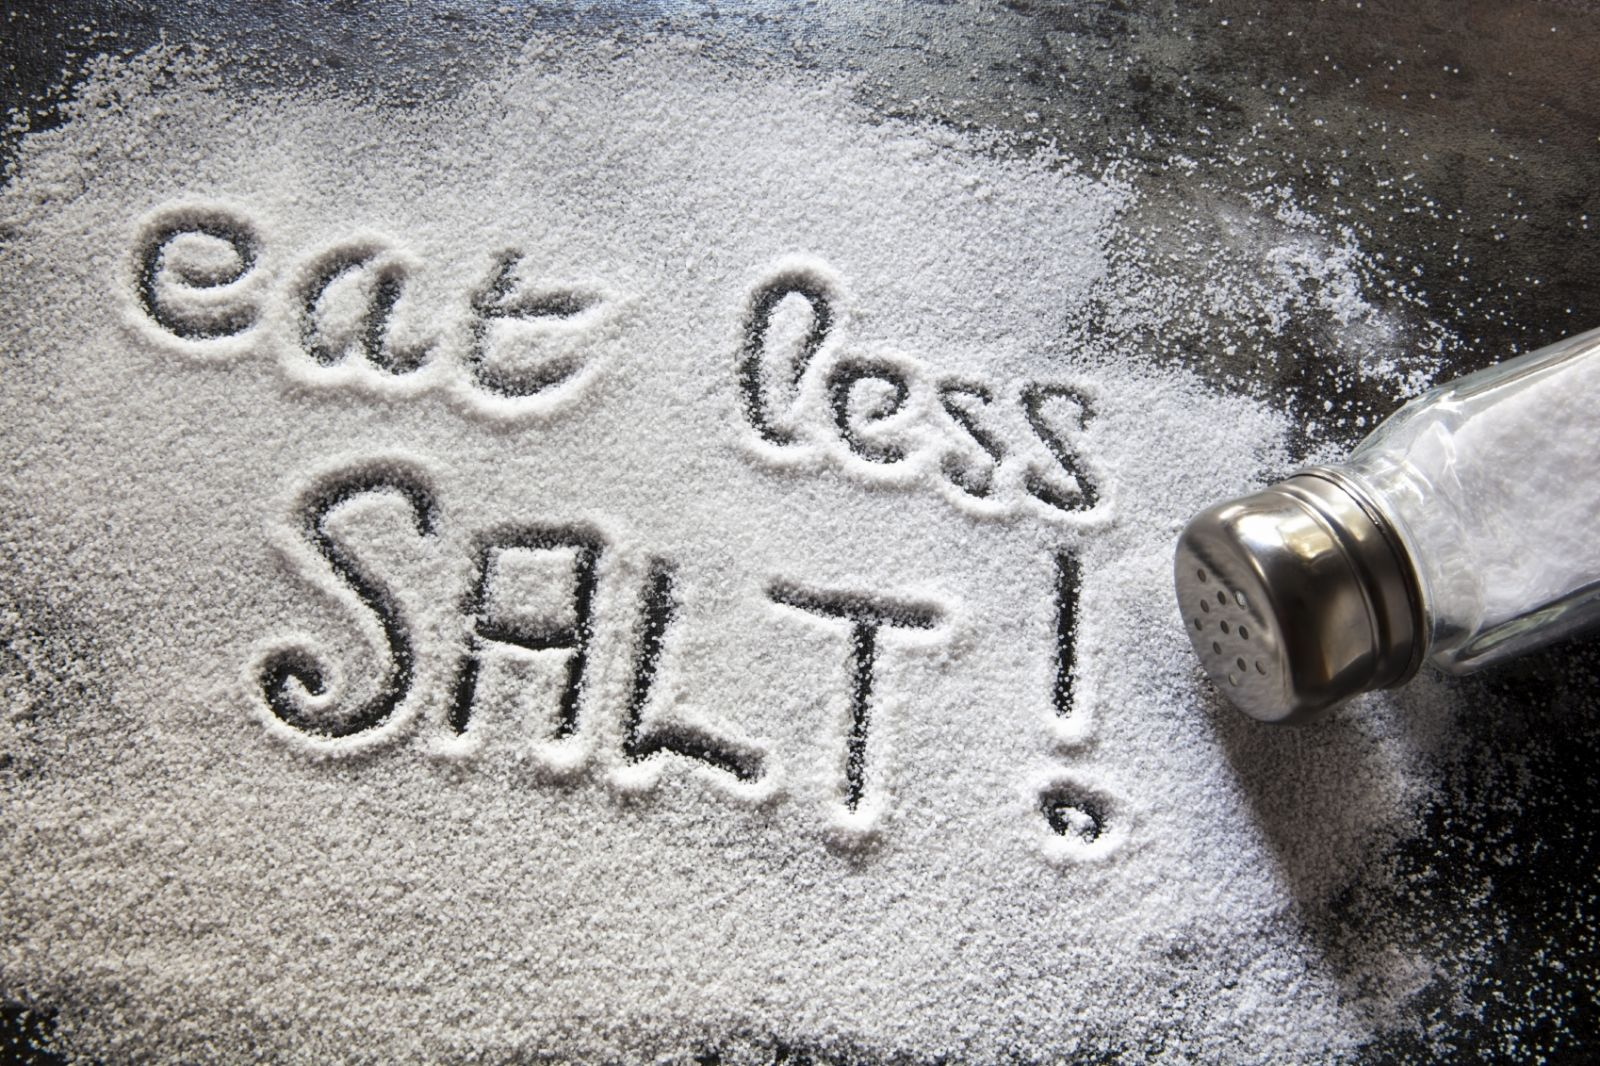 Eat less Salt and sodium to avoid swollen ankles during a flight! #airtraveltips #traveltuesday